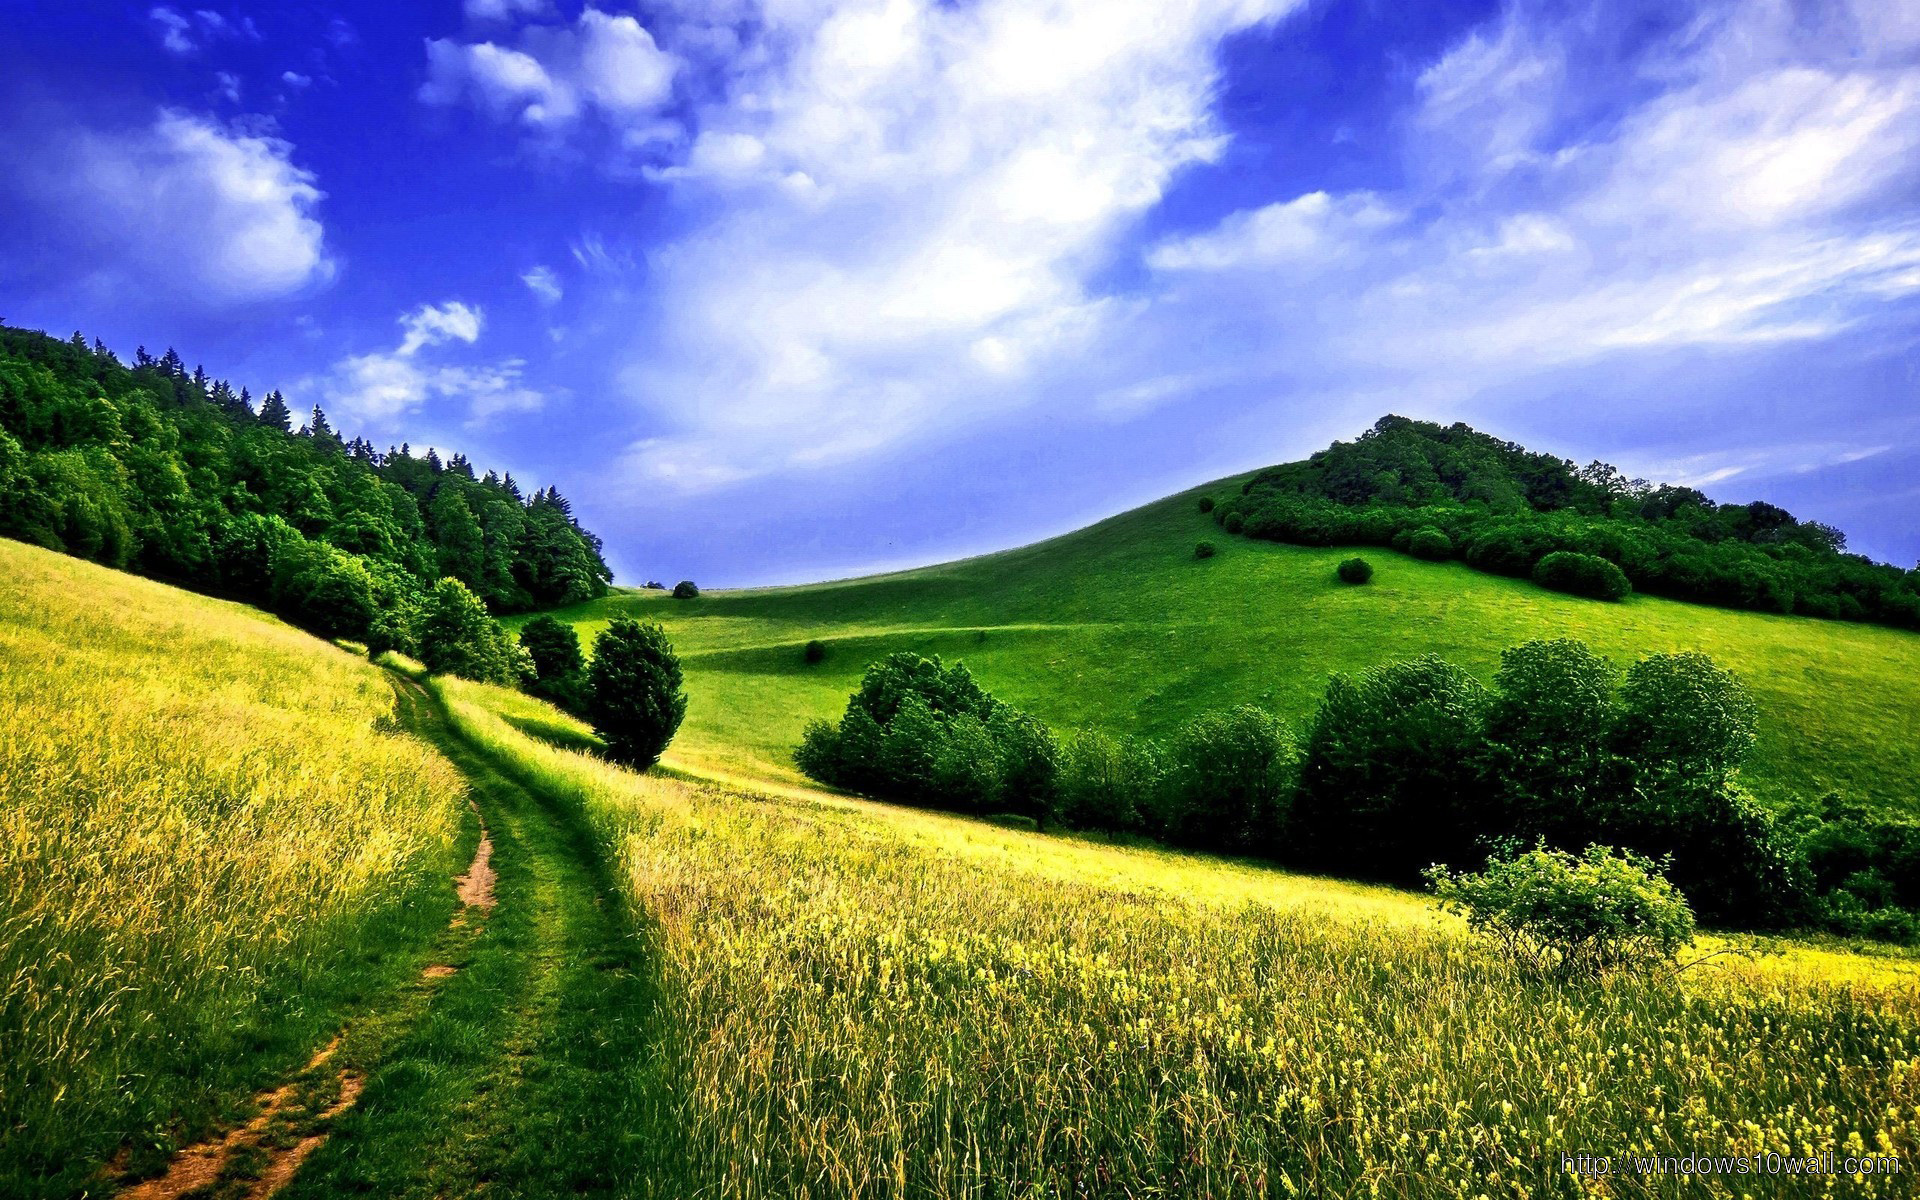 Country Road In A Green Field Wallpaper Windows 10